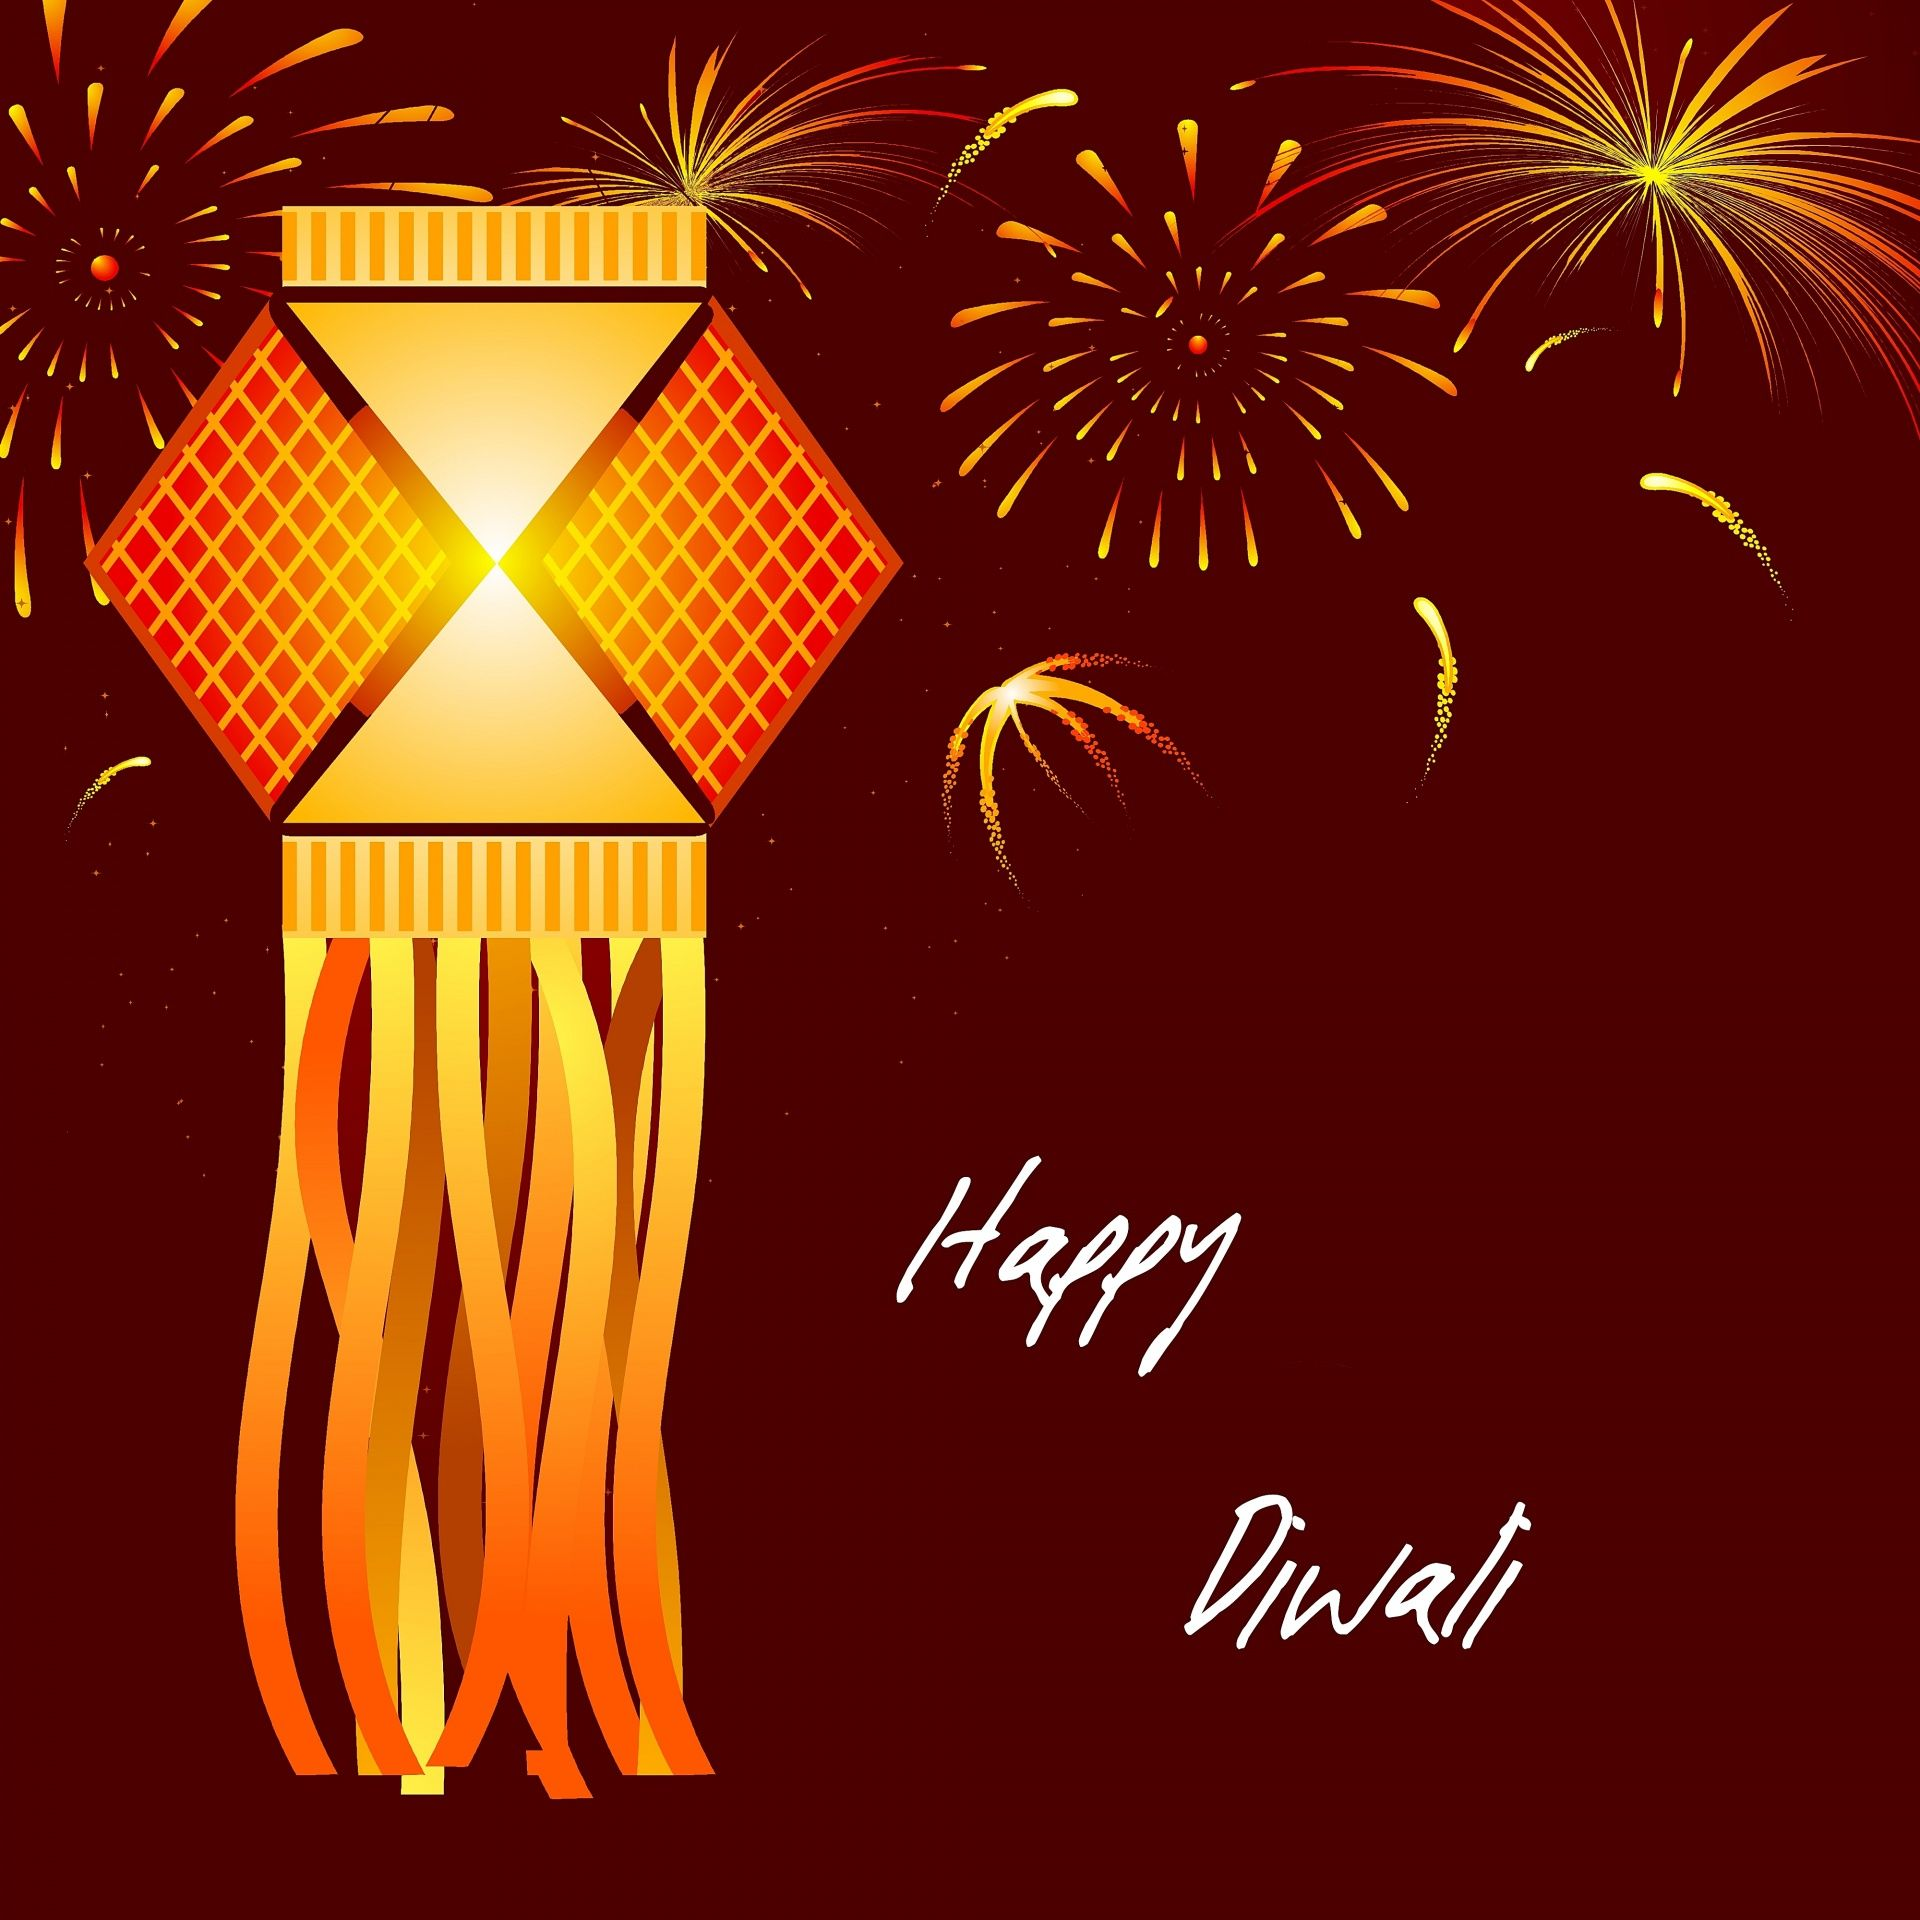 Happy Diwali Wishes | Diwali 2020 | Free Happy Diwali Wishes